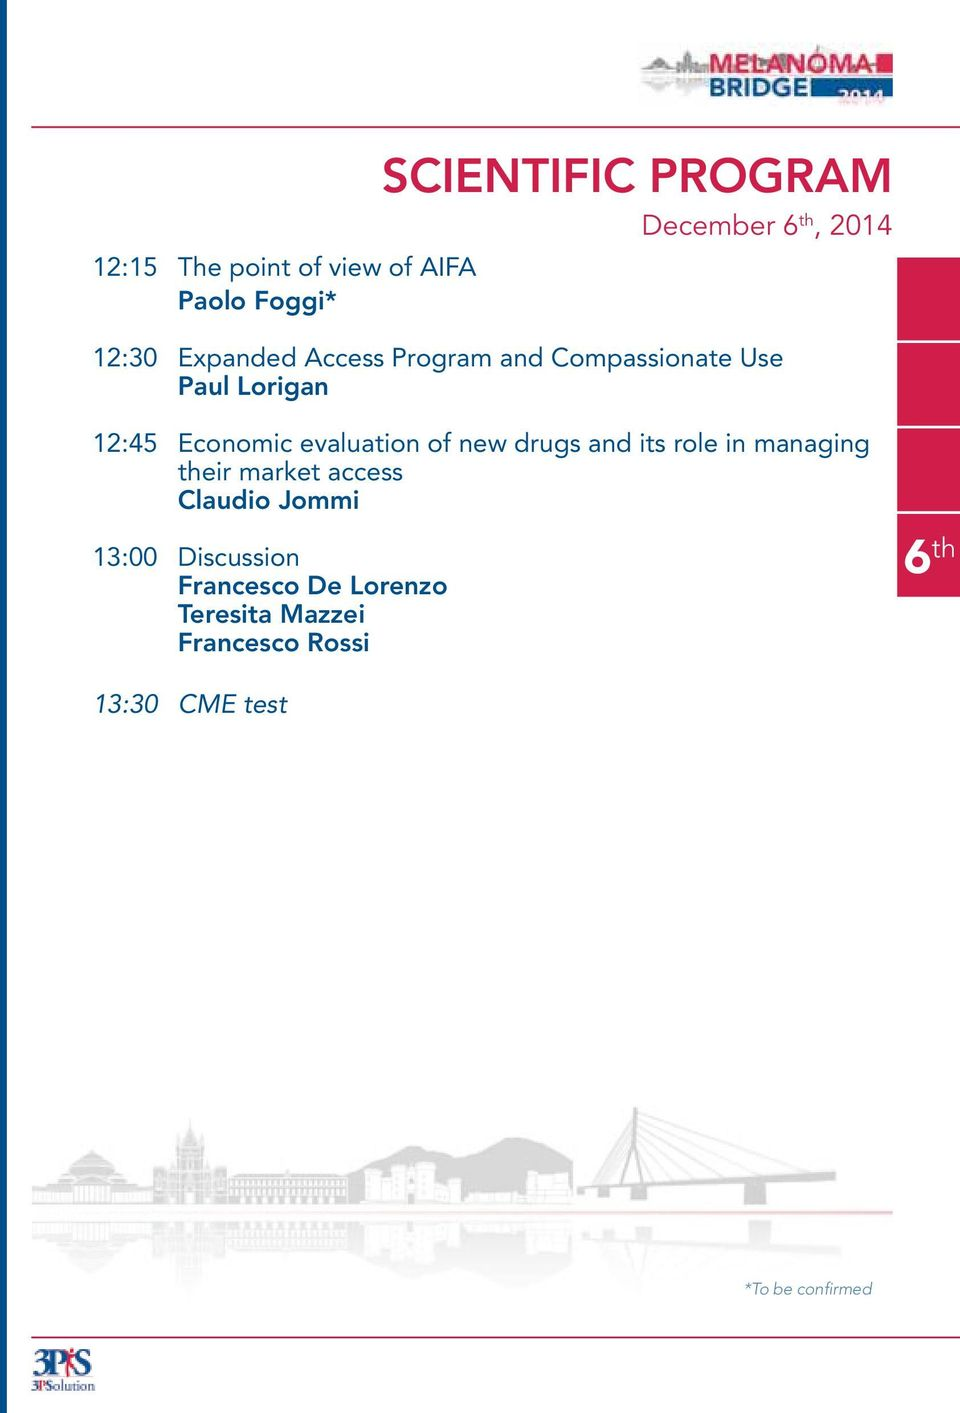 evaluation of new drugs and its role in managing their market access Claudio Jommi 13:00